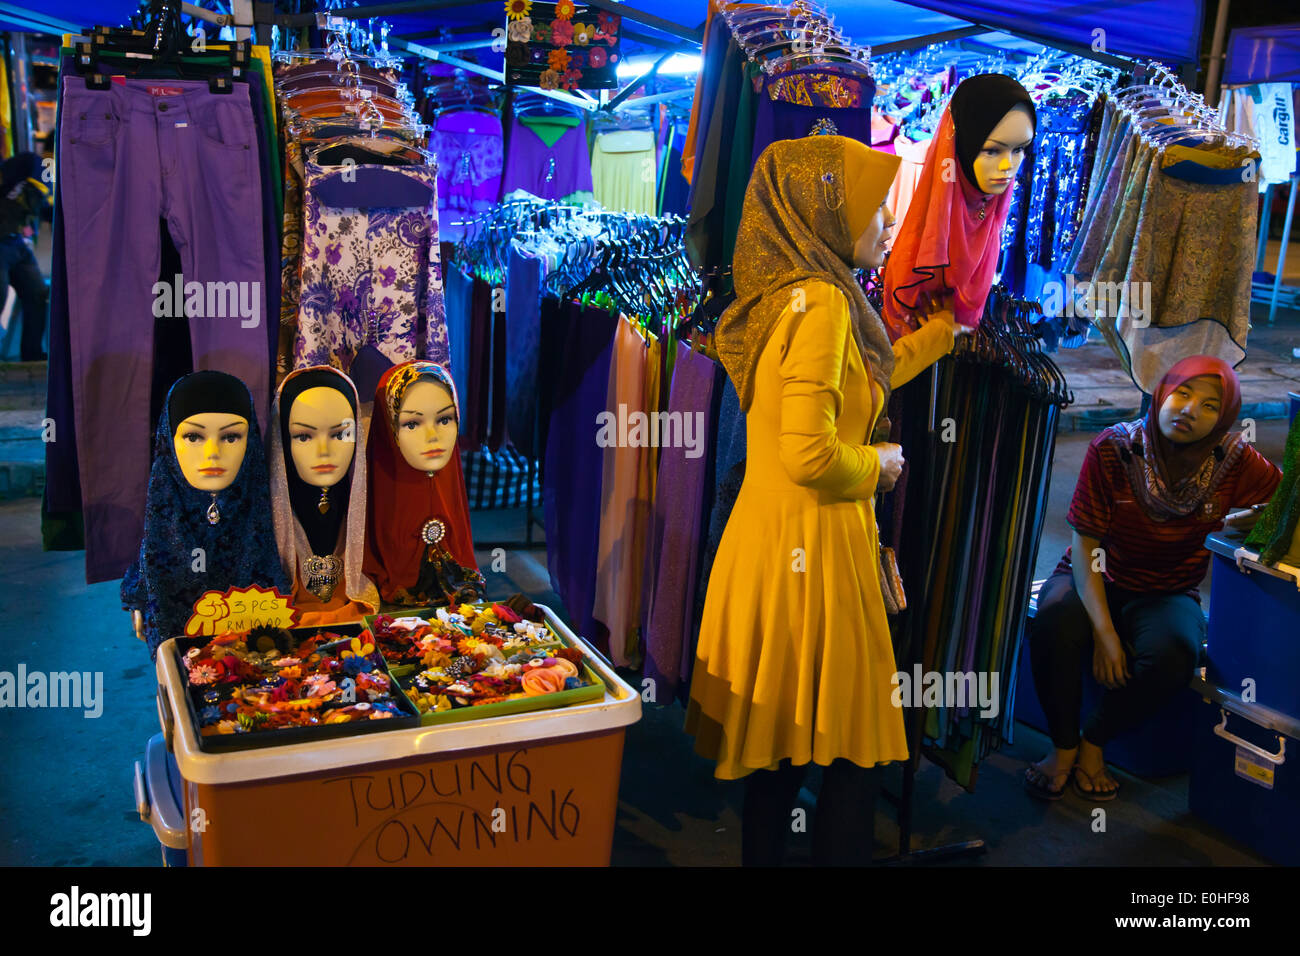 HEAD SCARVES for Muslim women for sale in the KOTA KINABALU NIGHT MARKET - SABAH, BORNEO, MALAYSIA - Stock Image